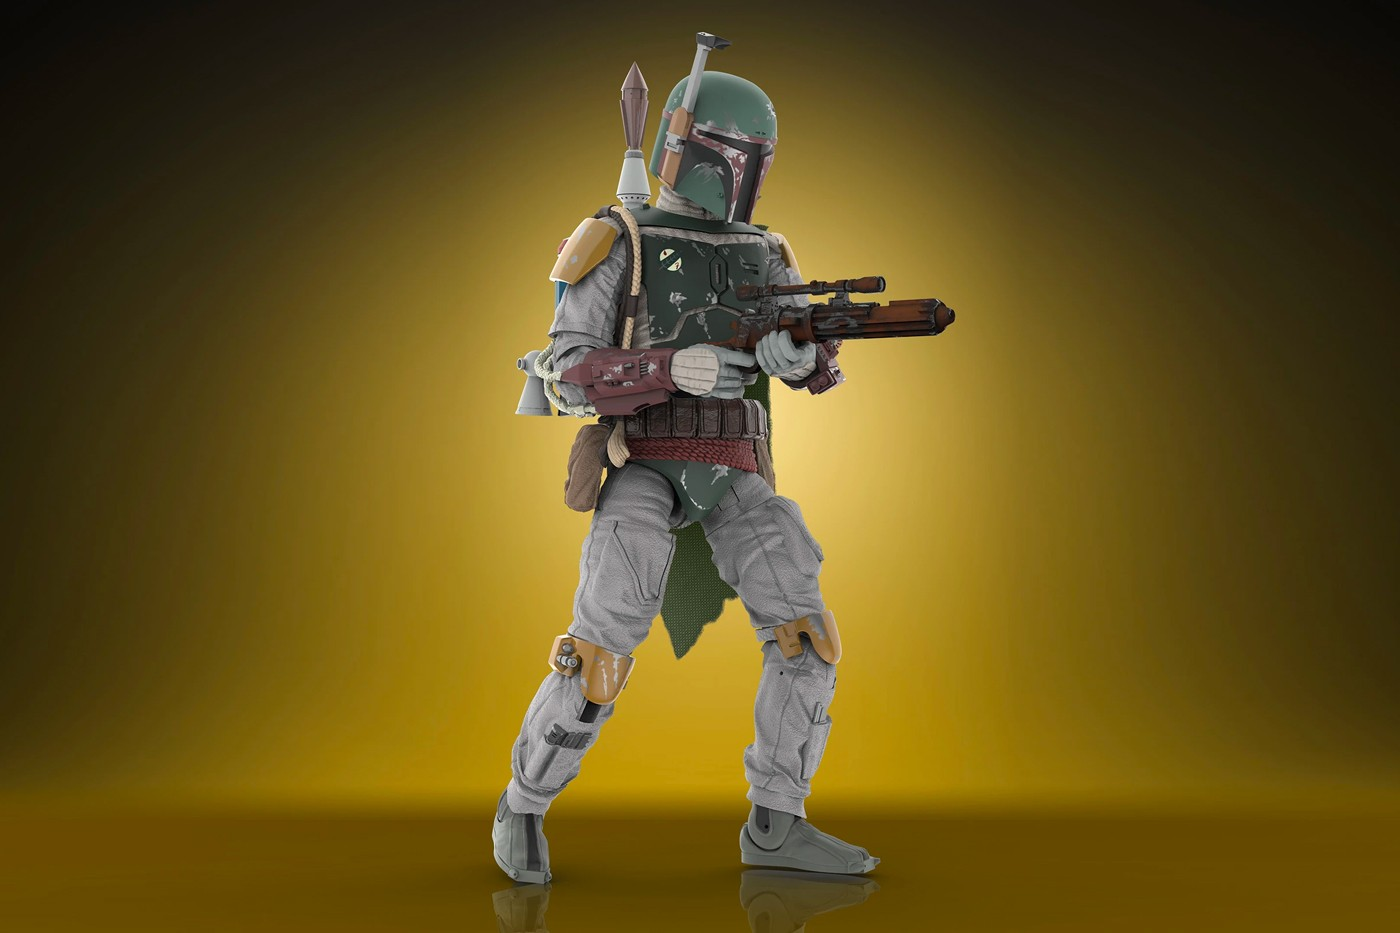 Star Wars Retro Collection Boba Fett Toy Action Figure Hasbro Kenner *IN HAND*